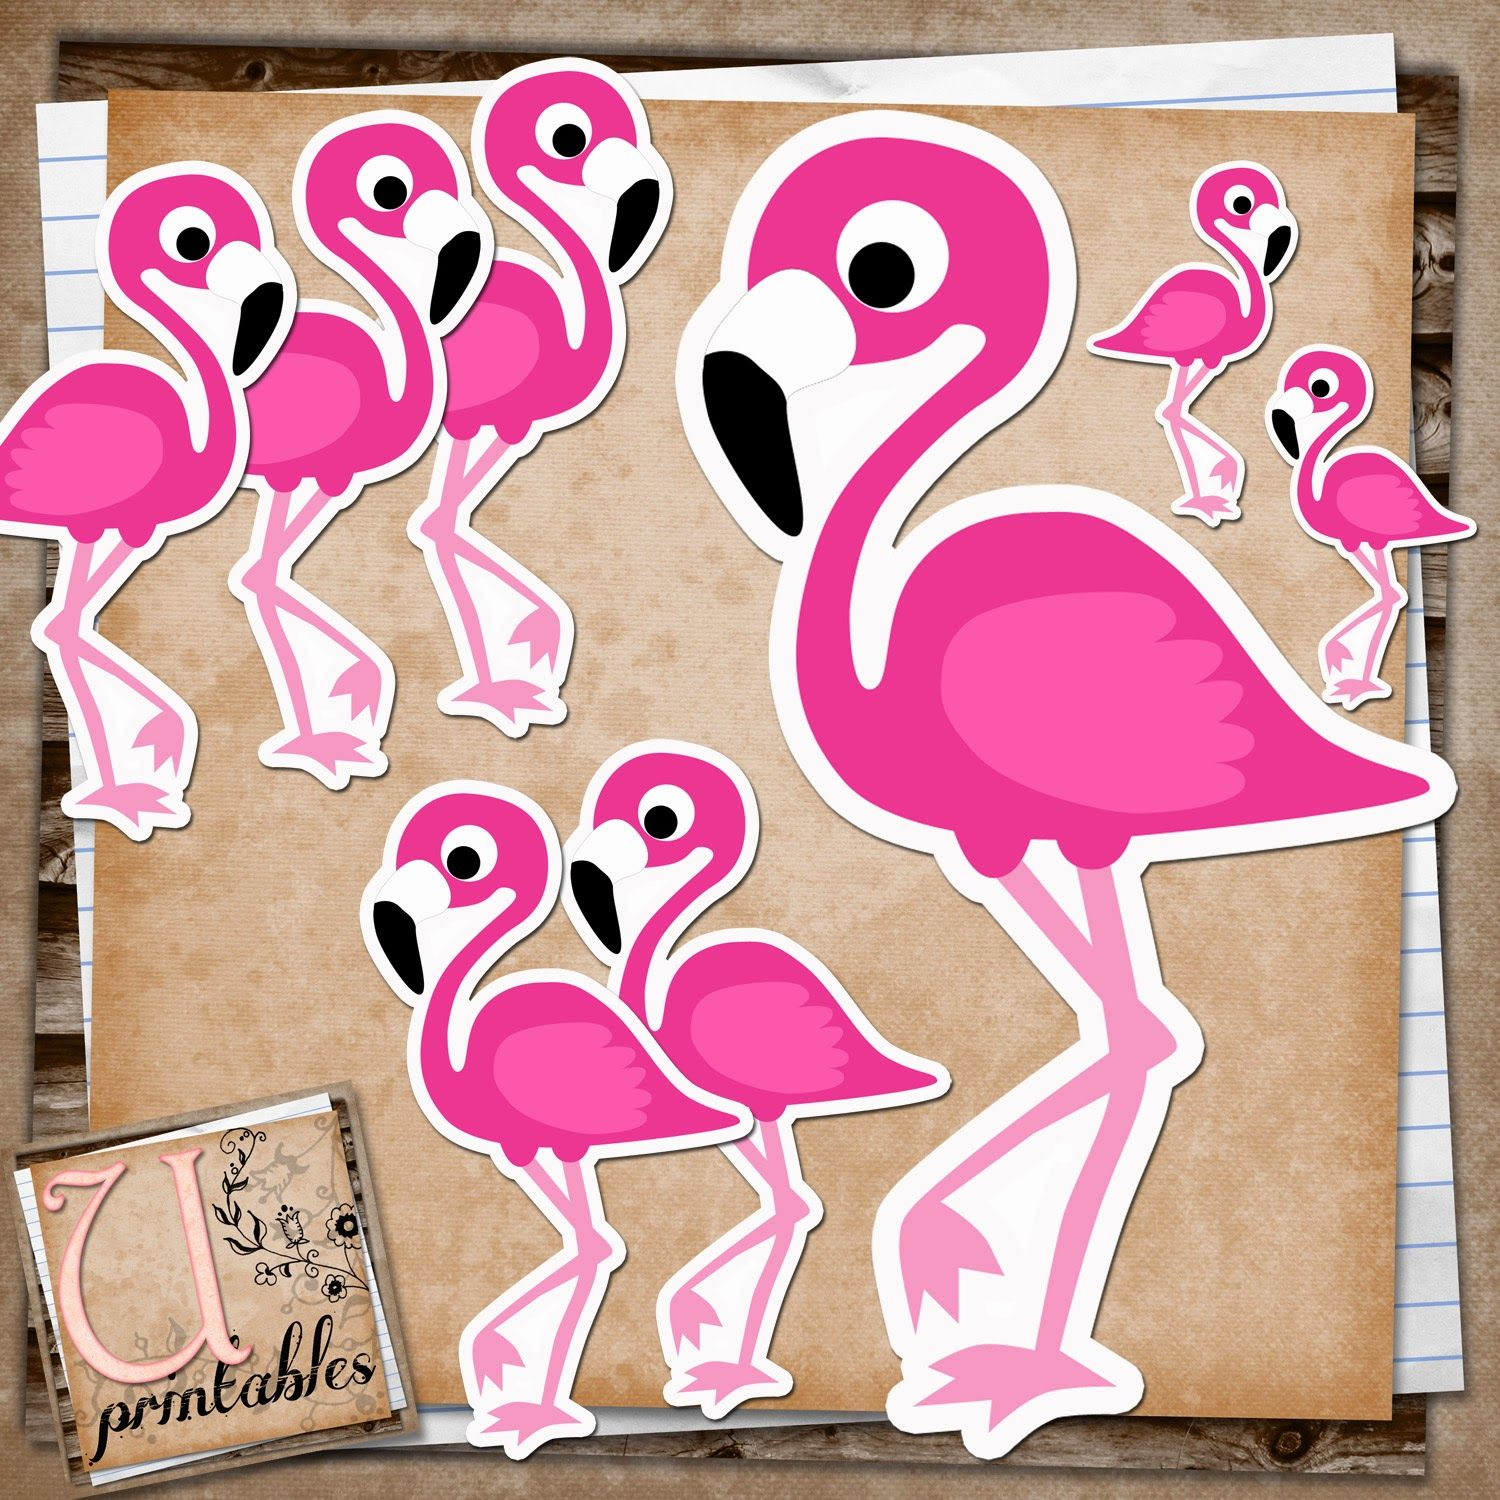 photograph relating to Flamingo Printable known as RebeccaB Models: Free of charge Printable - Flamingo Print and Slice